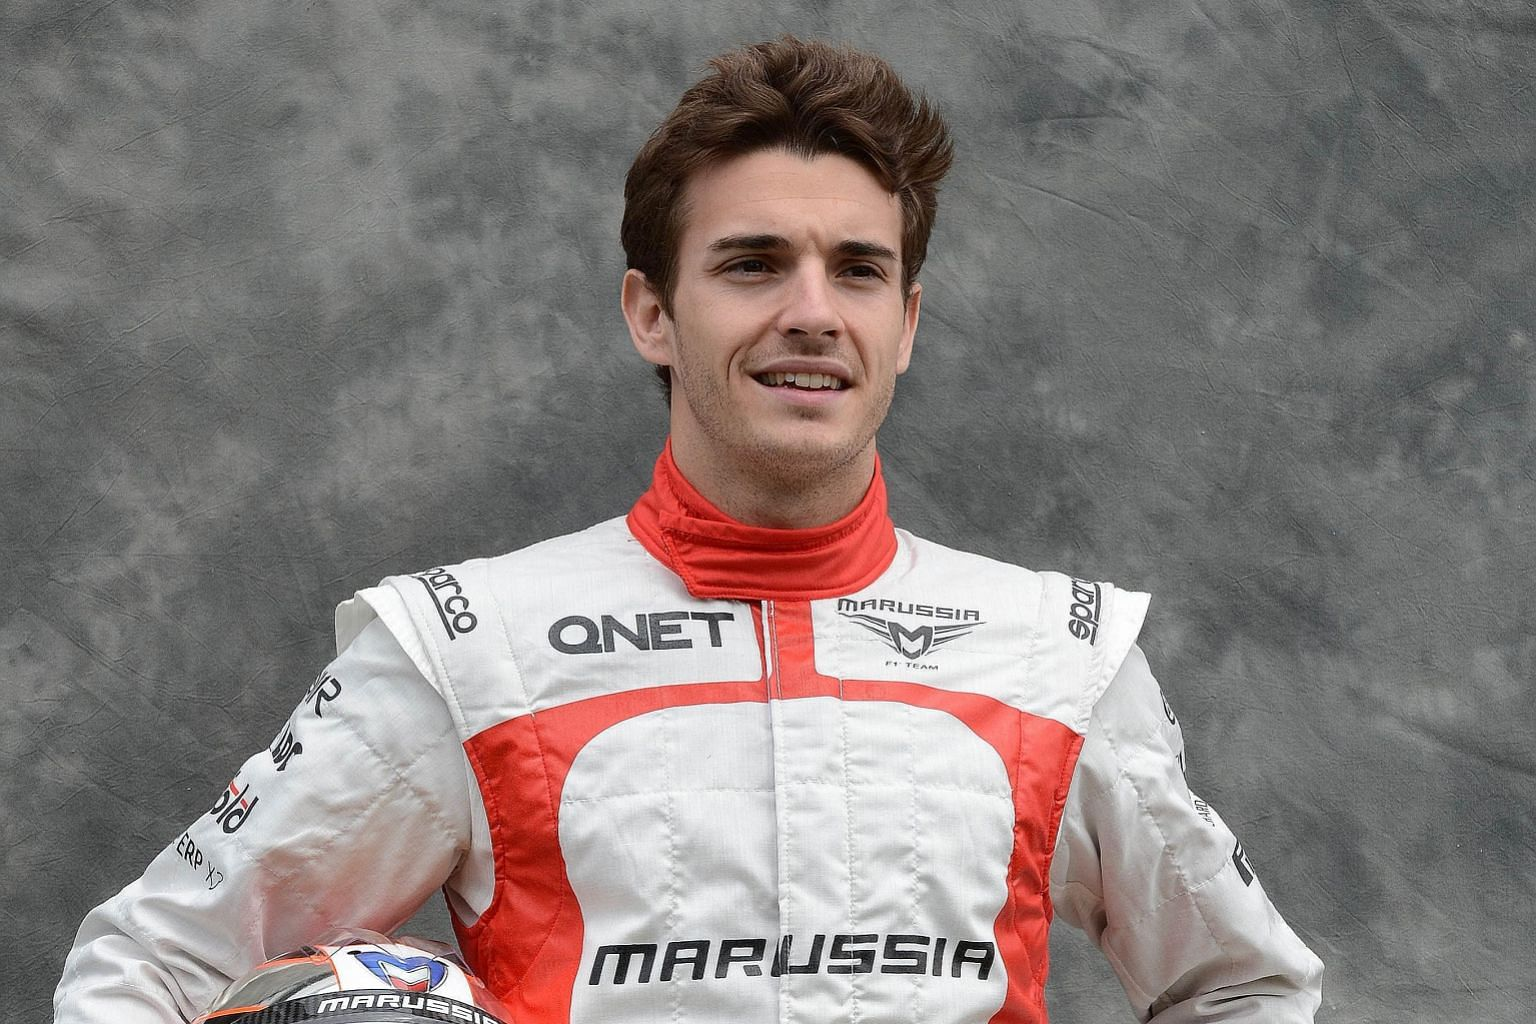 Bianchi's fifth place in Monaco last year gave the then Marussia team their first points. He emerged from the Ferrari academy with a glowing reputation and was tipped to achieve great things in the sport.